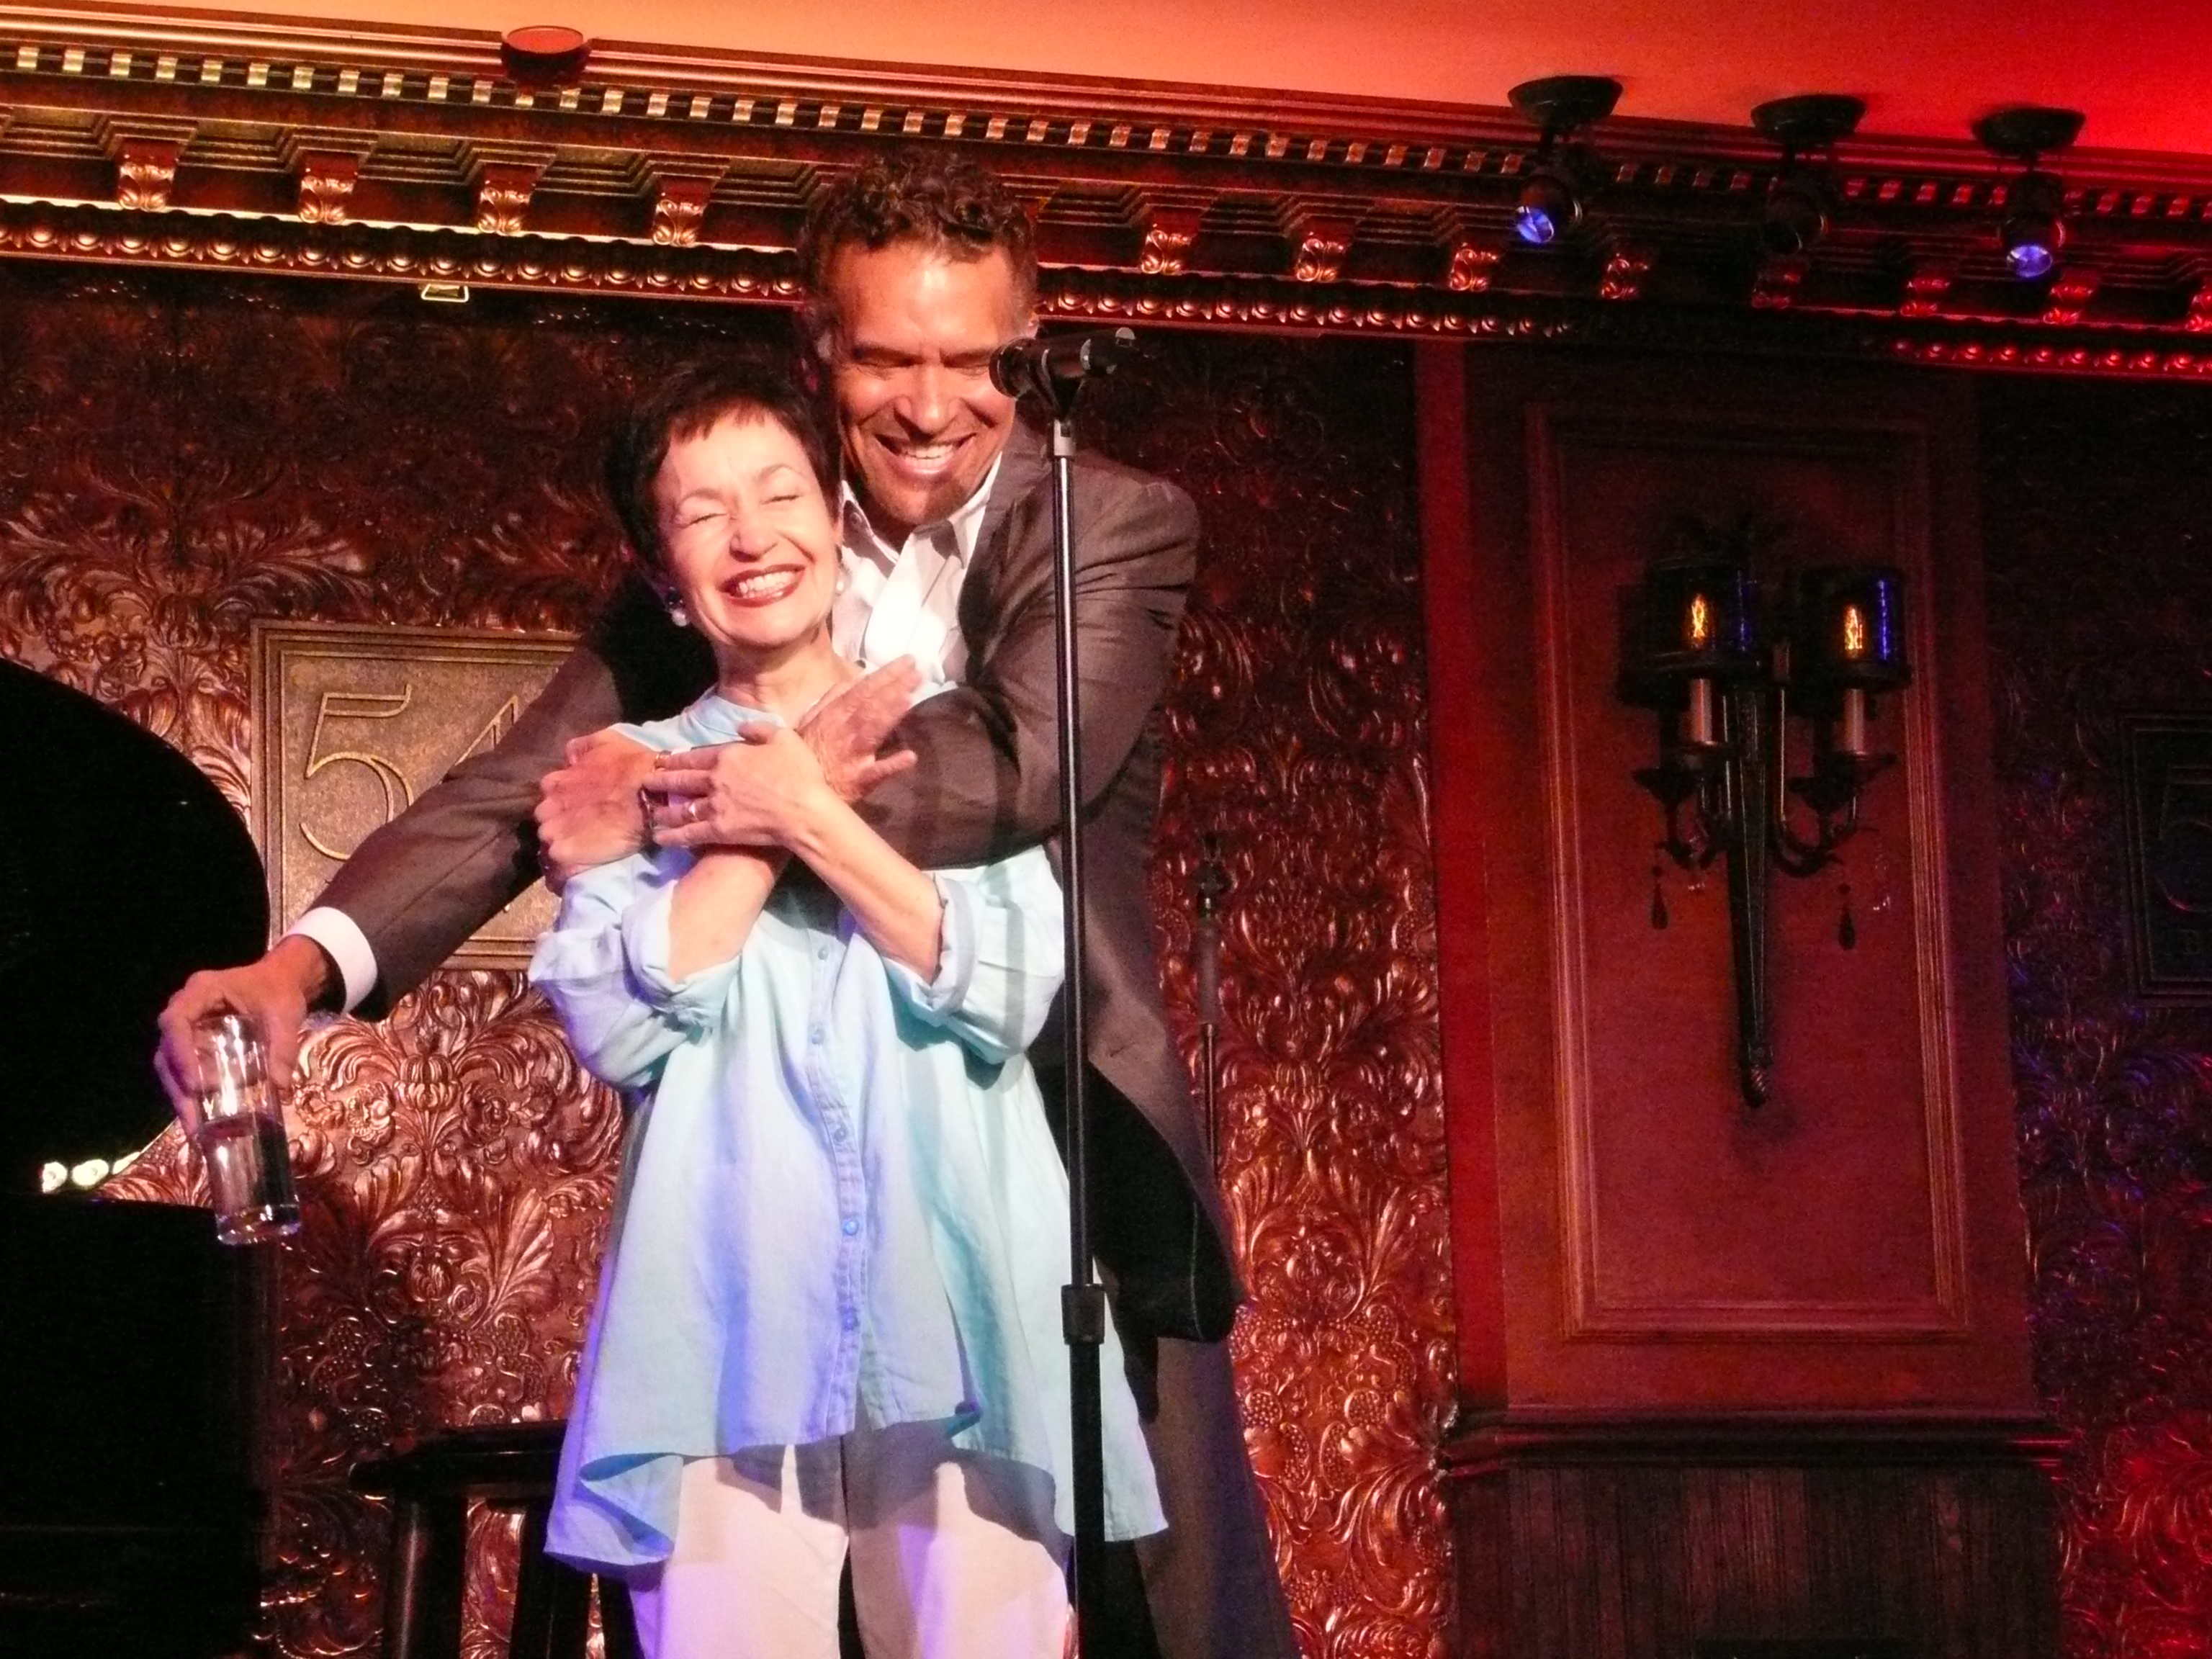 Brian Stokes Mitchell Shines as Guest Artist with Ahrens & Flaherty (video)